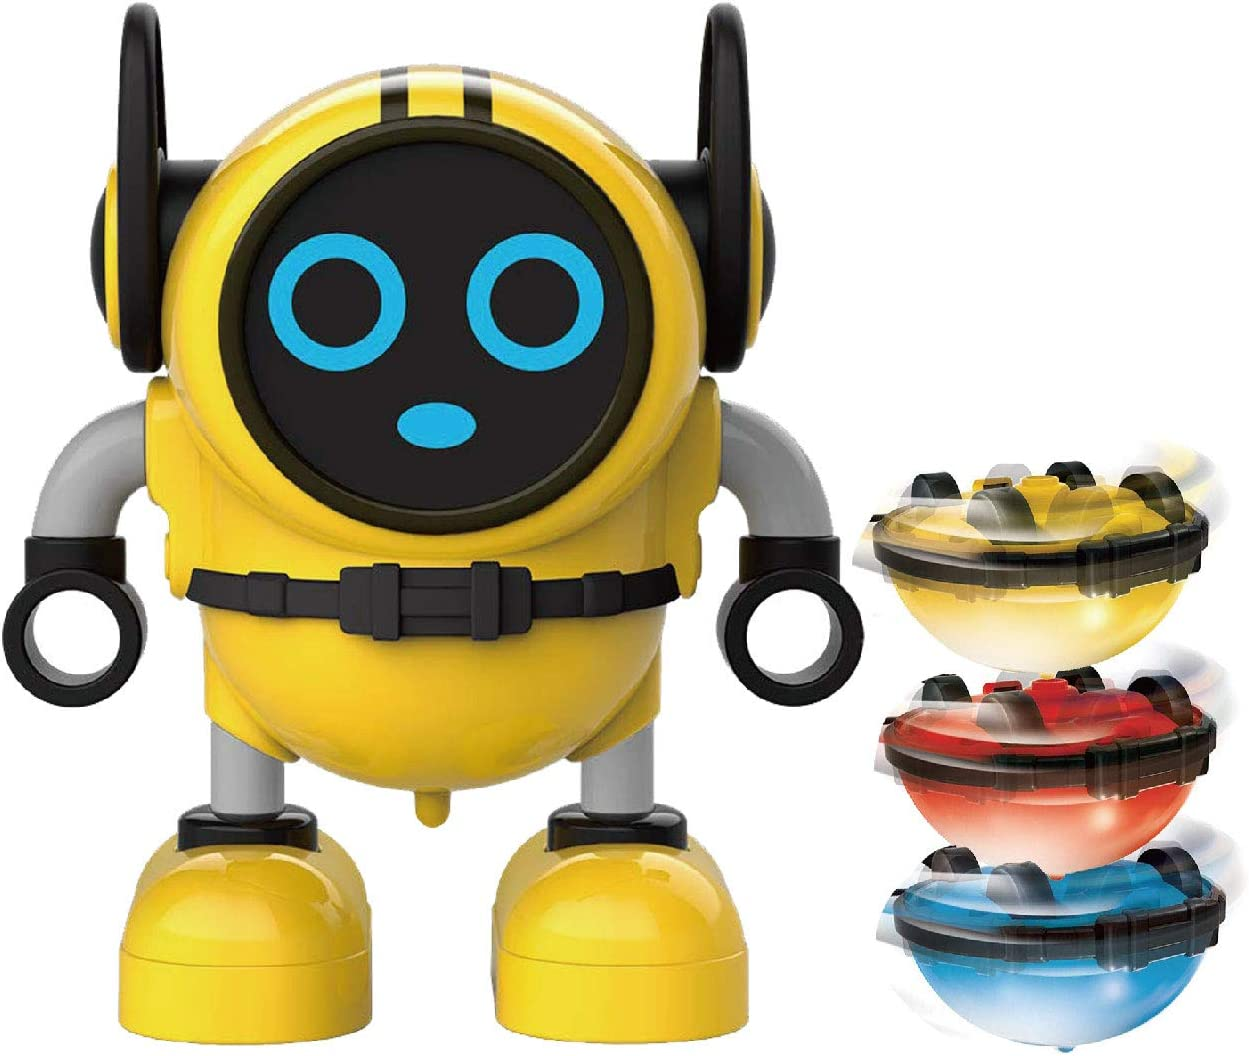 SPACE LION Spinning Top, Toys-Spin Tops, Multi-Function Mini Robot Toys, Pull Back Car Toy, Novelty Spinning Tops, Gyro Battling Game Tops, Wind Up Toys for Kids(Yellow)